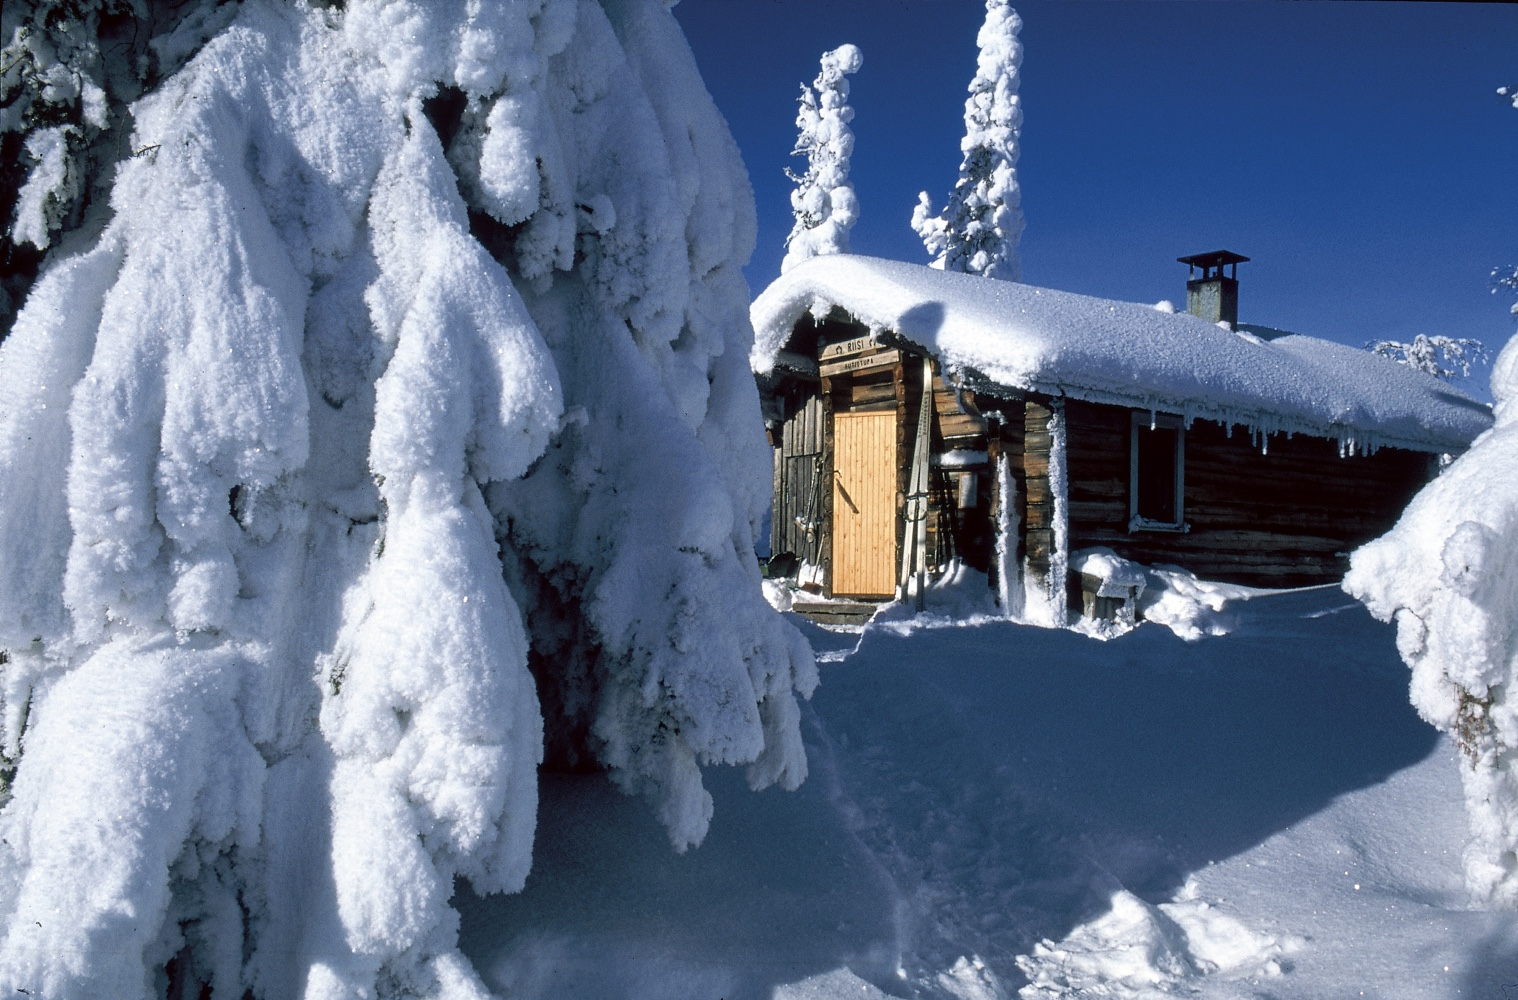 A cosy winter cottage in Finland. Image©Visit Finland.